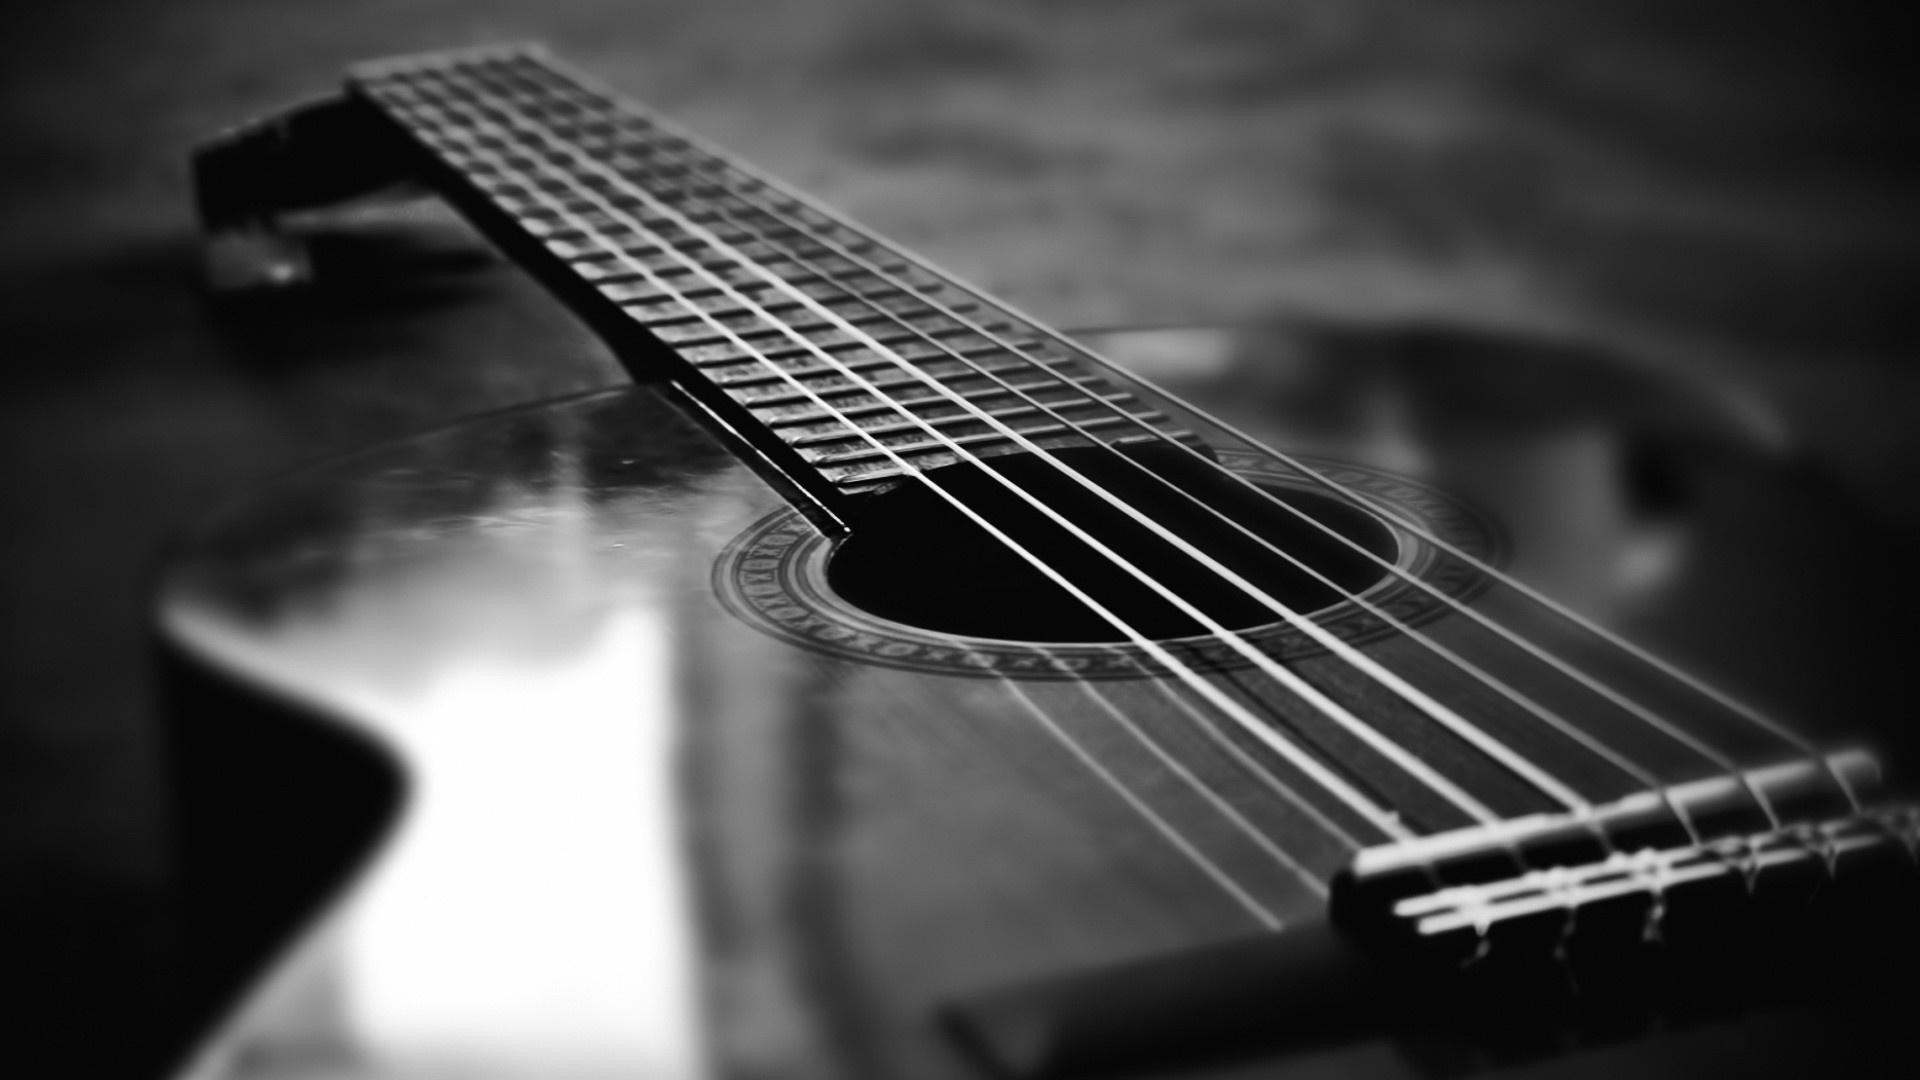 1920x1080 Acoustic Guitar Wallpapers 1080p - Wickedsa com